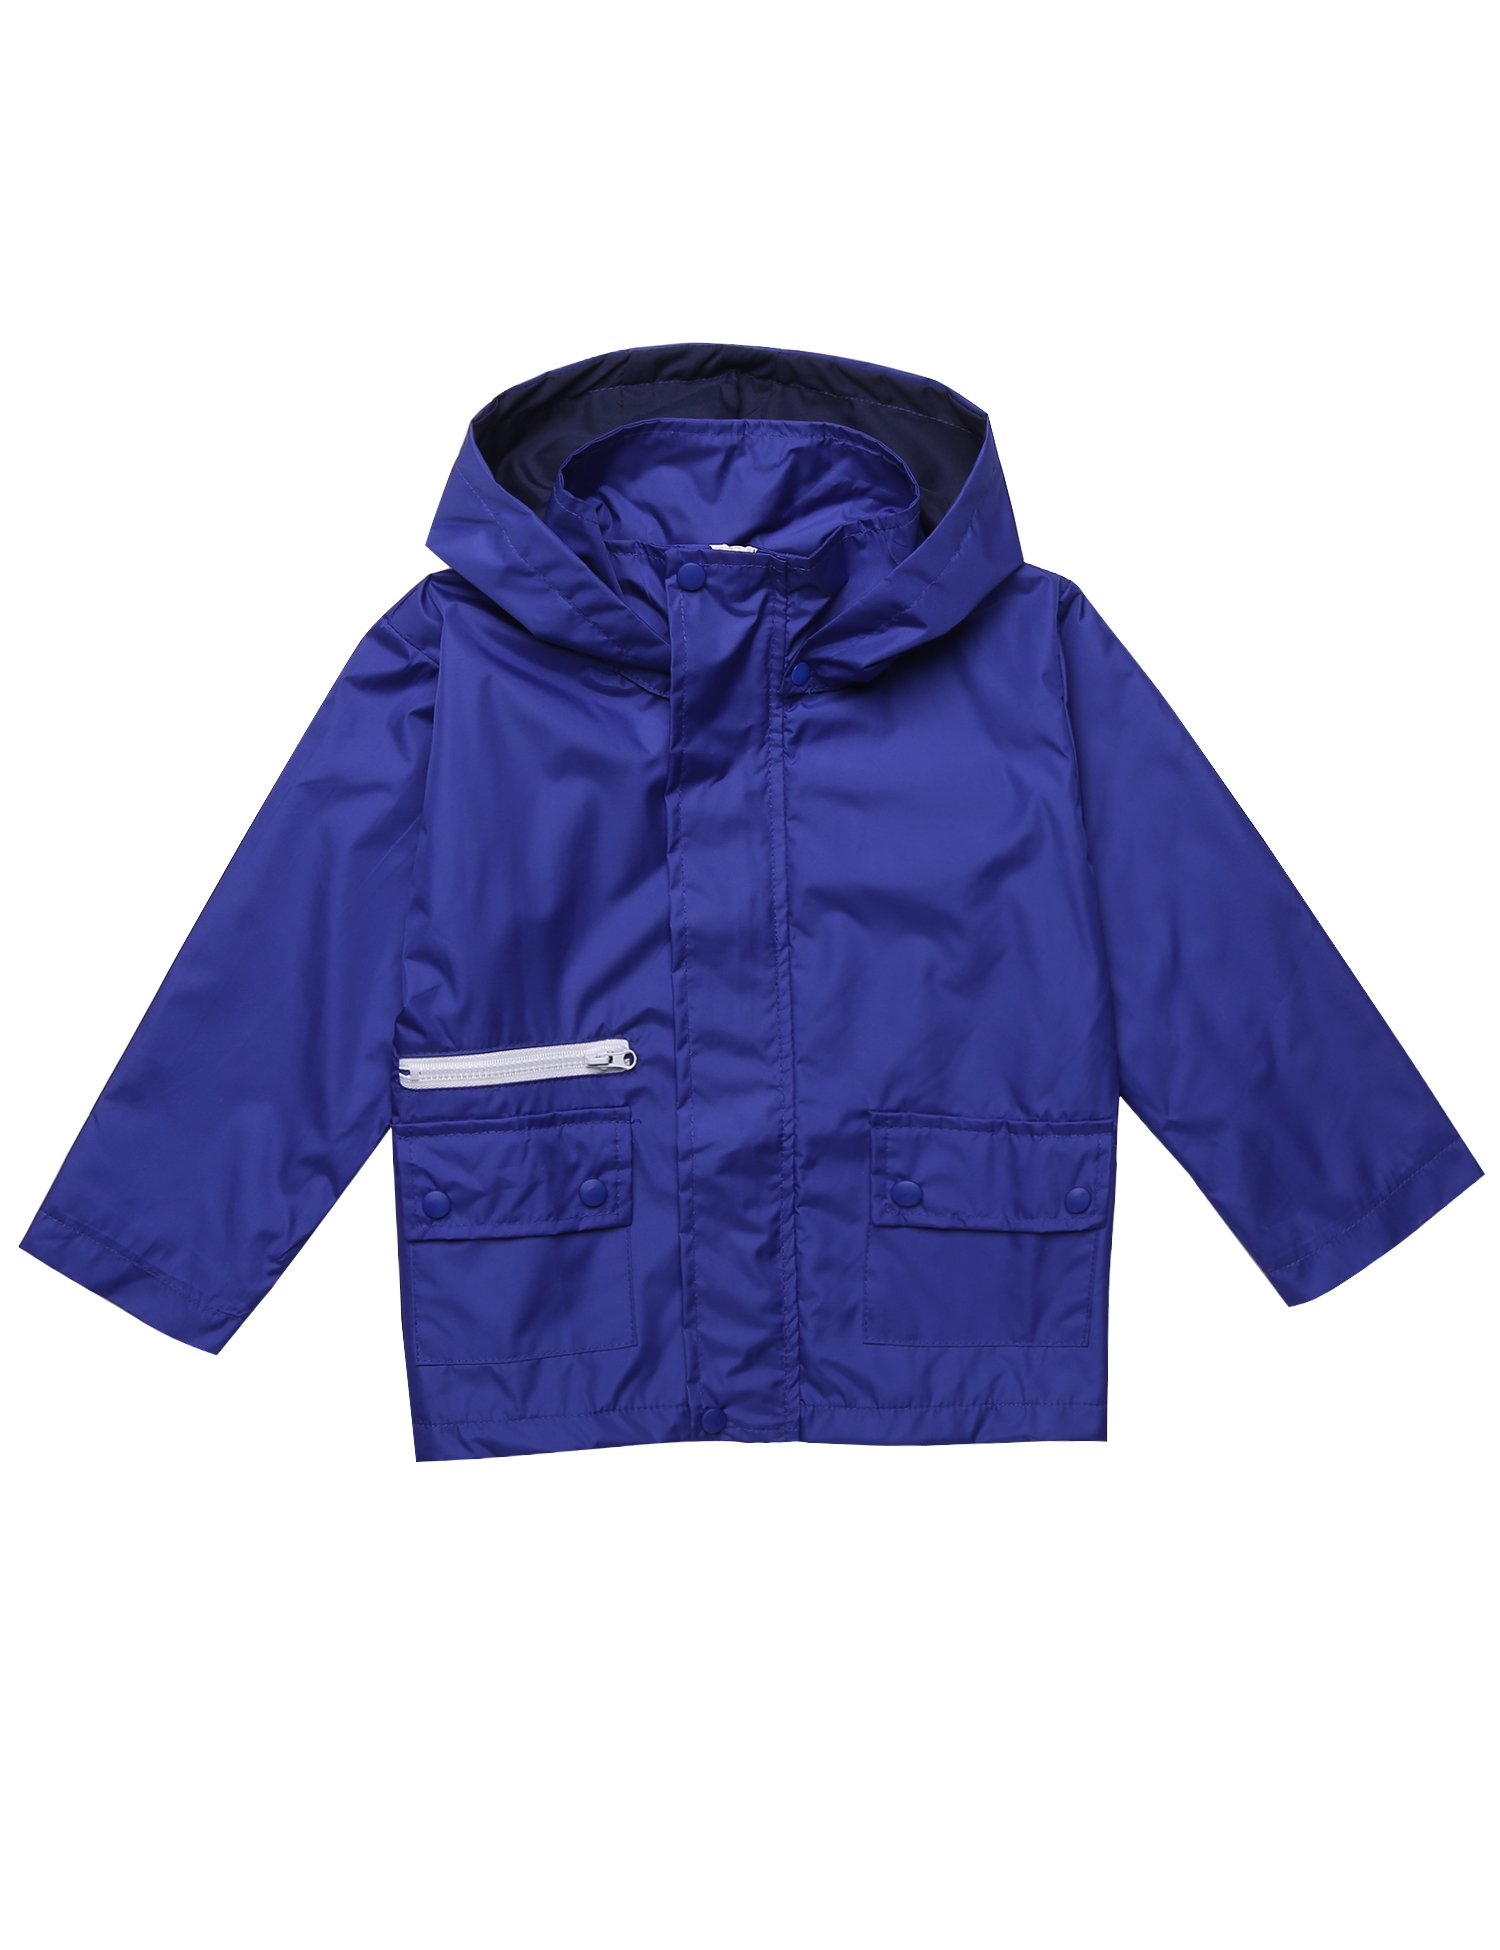 Teaio Boys Girls Hooded Waterproof Jackets Light Windbreaker Outwear Raincoat